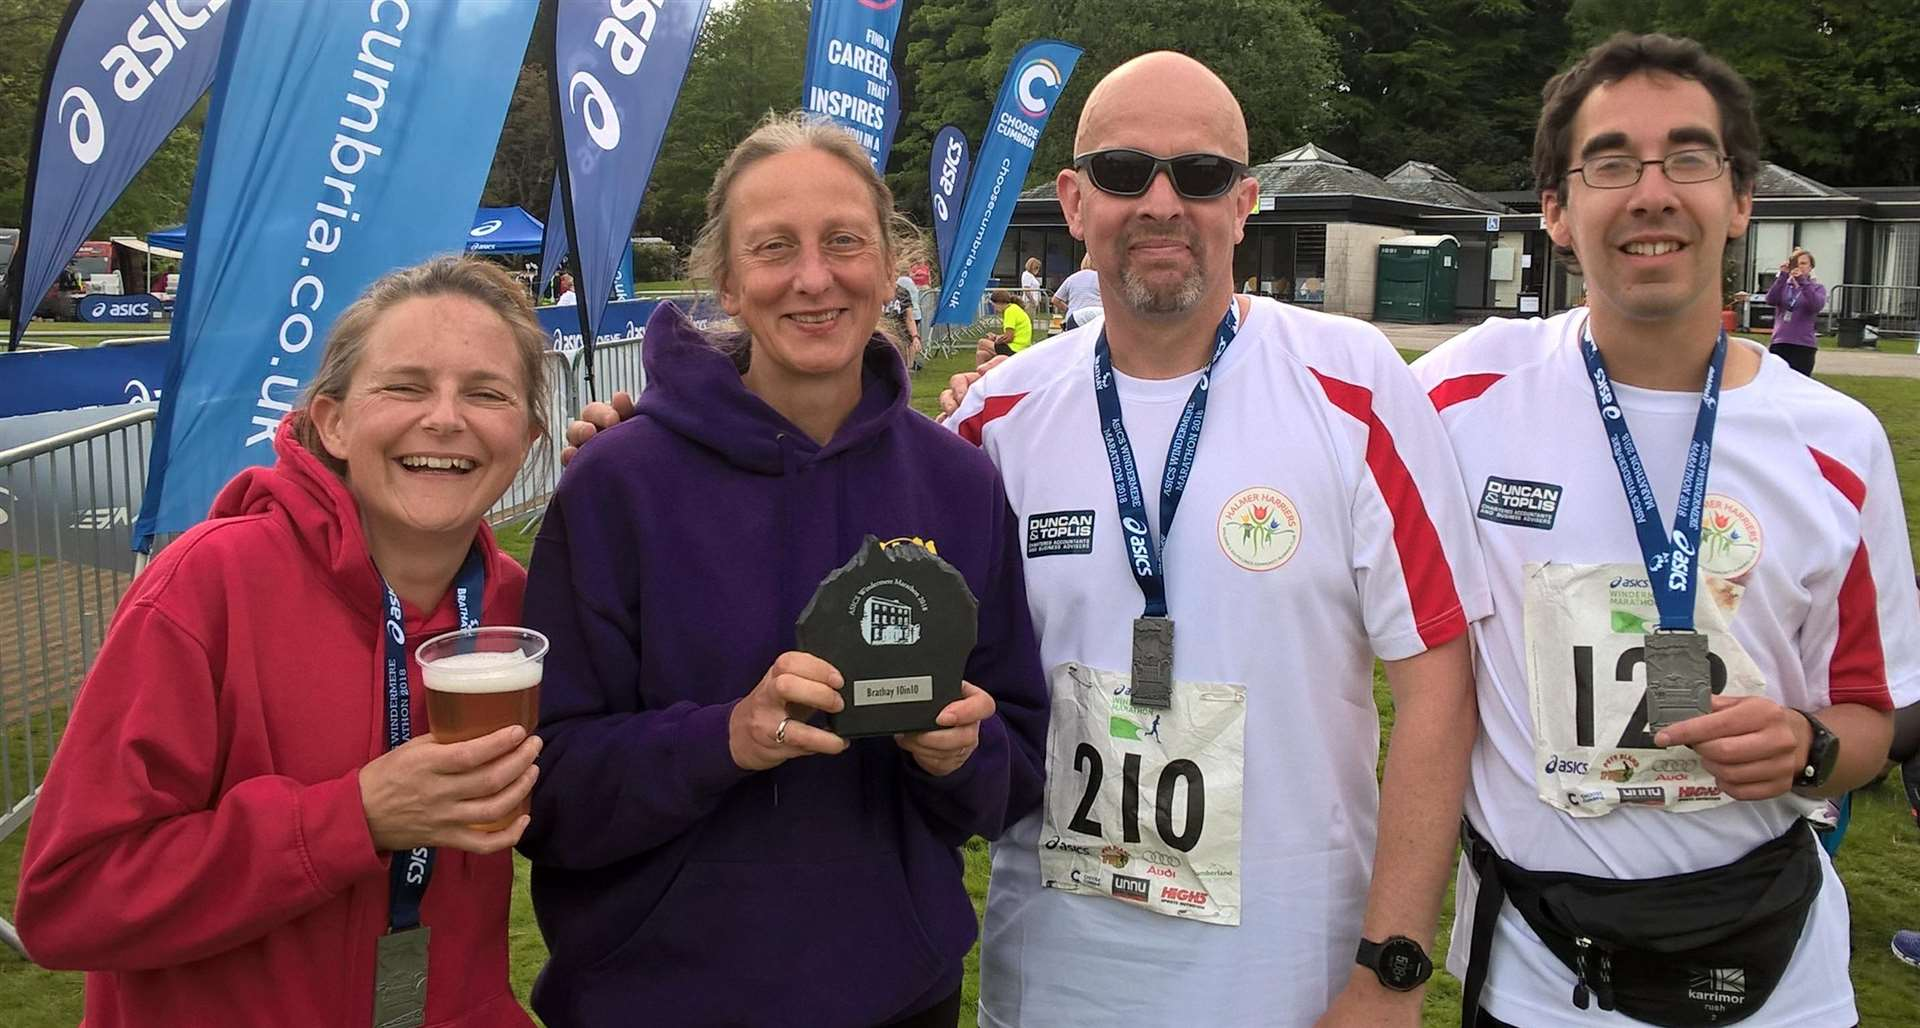 Windermere Marathon runners and Halmer Harriers members Lisa Gill, Diane Morris, Steve Tucker and Rob Hammond. Photo by Rob Morris. (2457837)